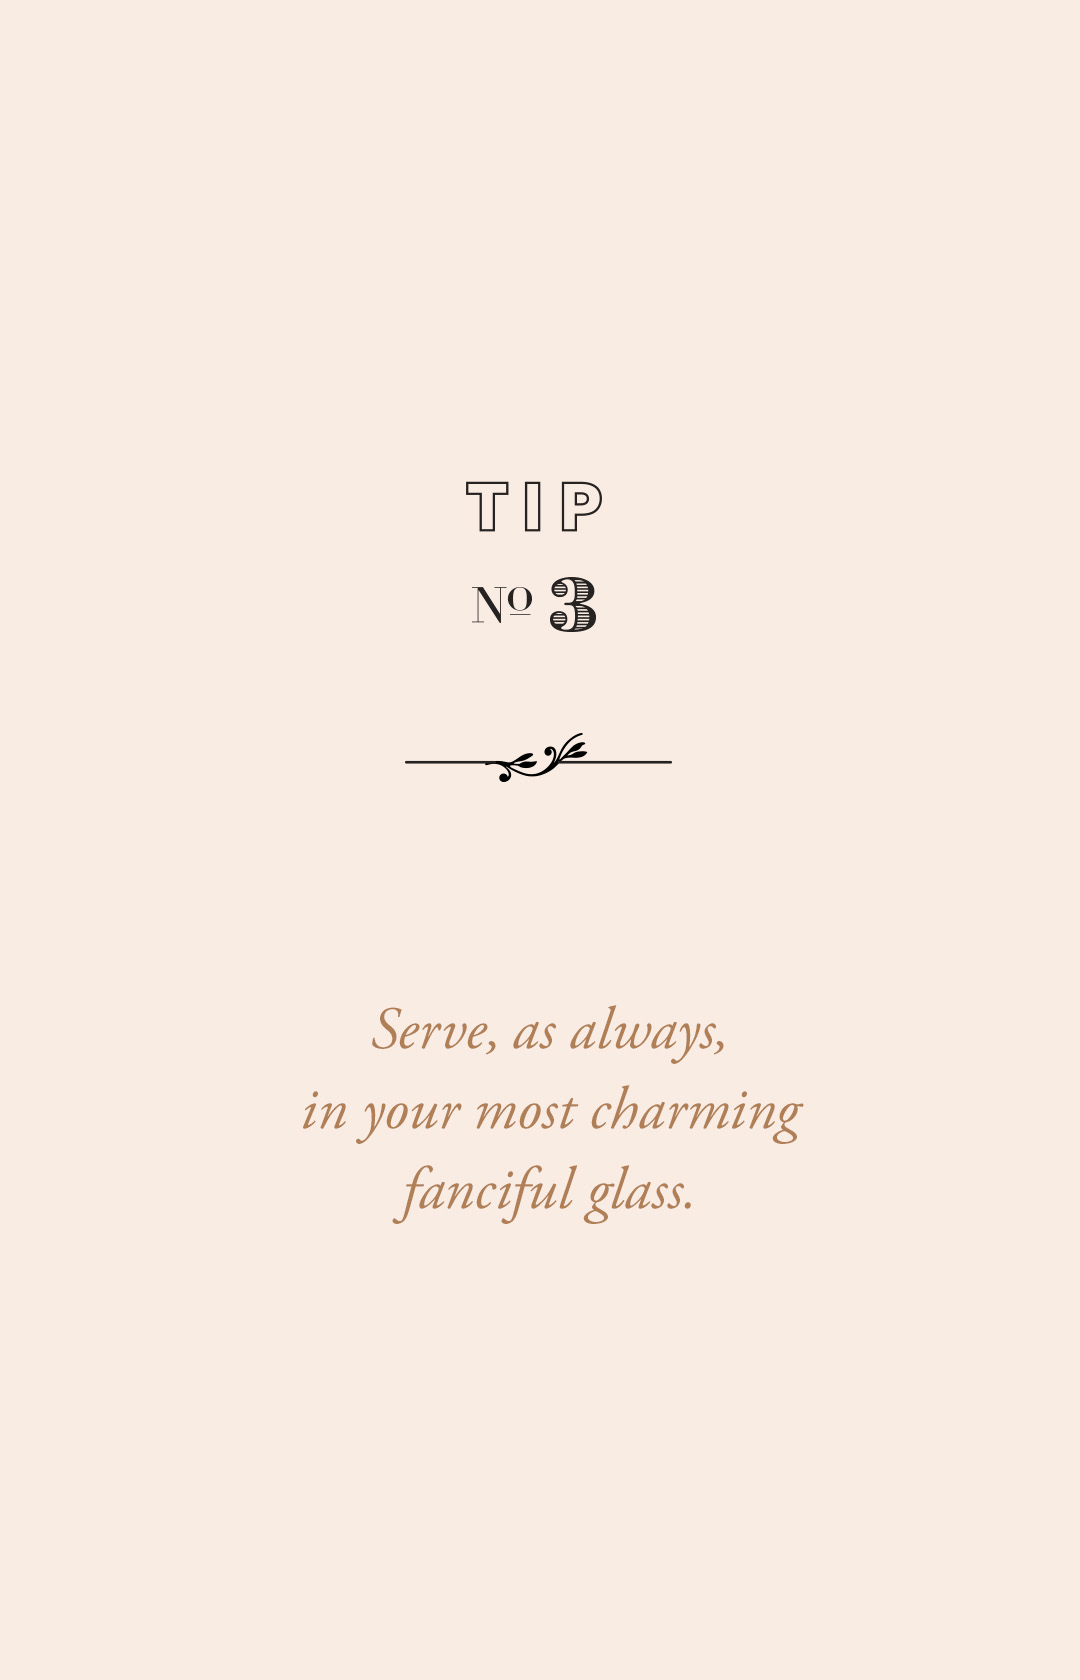 pw_site_tips_no3-tall.jpg